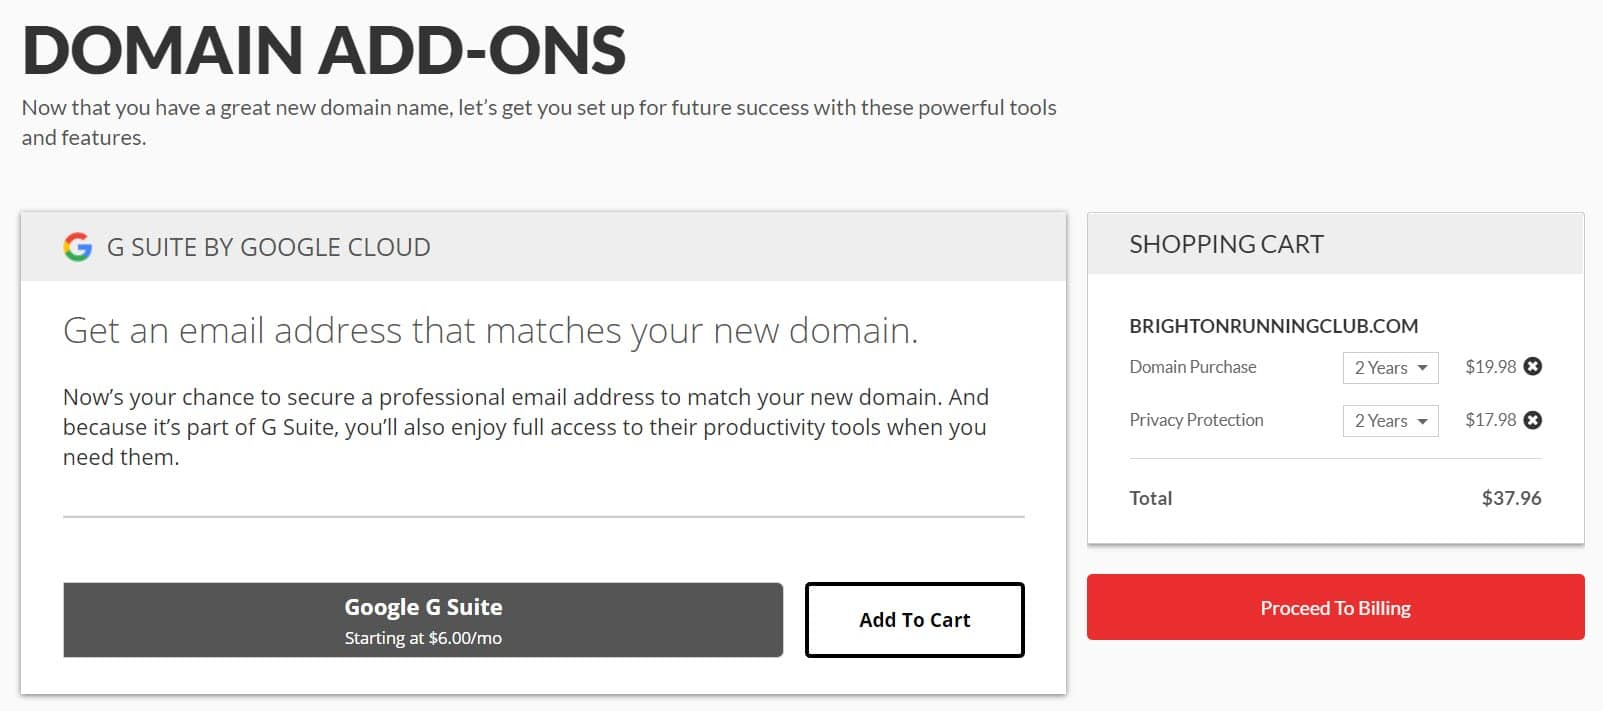 Domain Add Ons